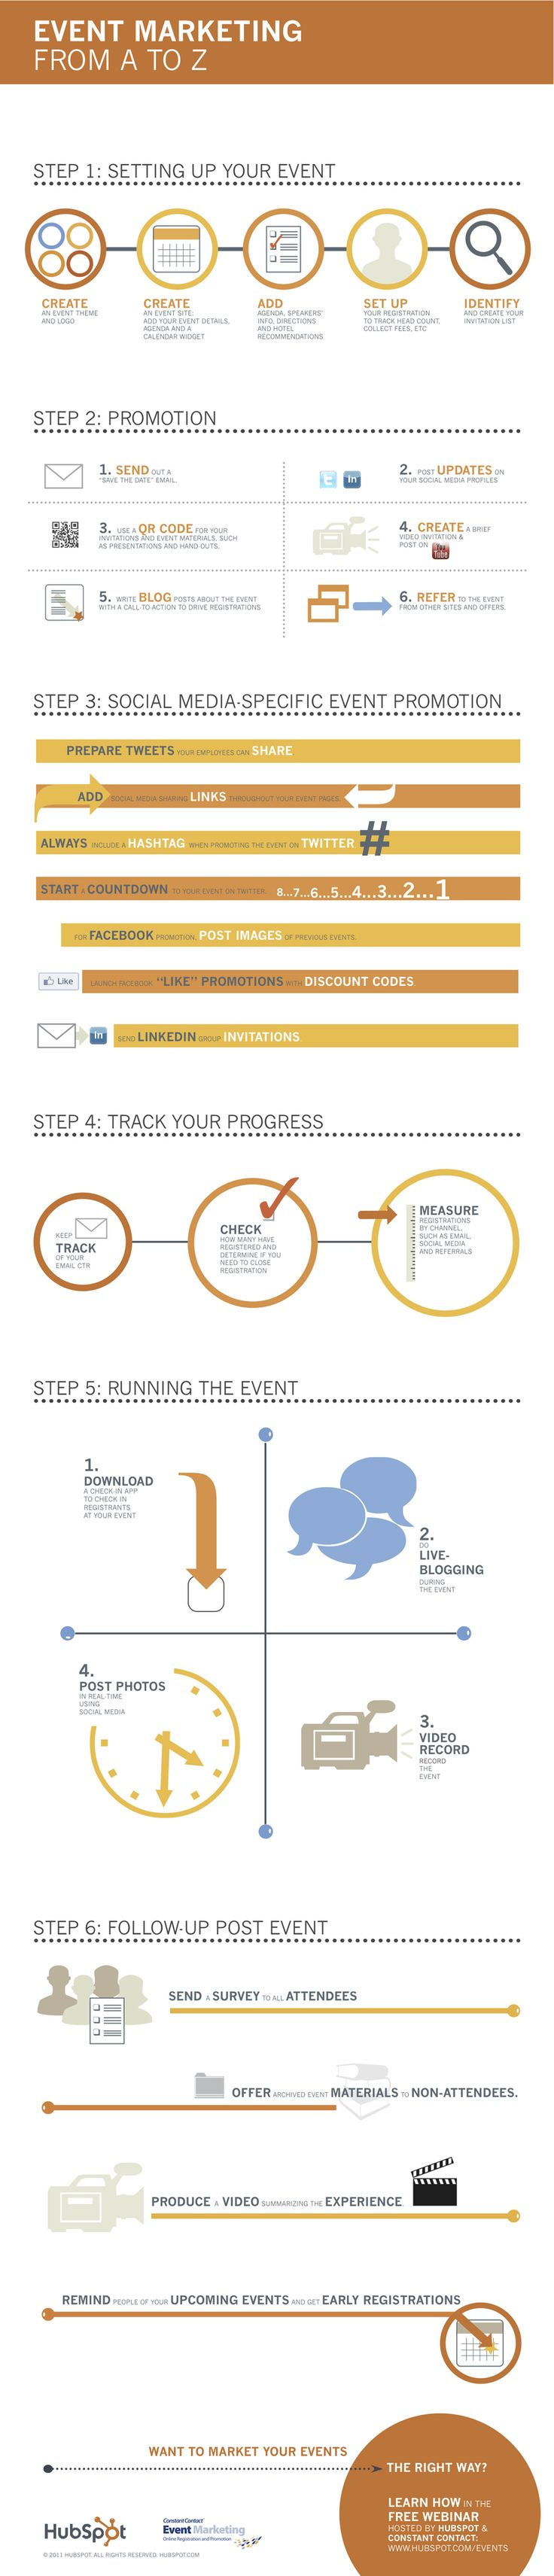 Fabulous Inforgraphic - How Do You Do Event Marketing The Right Way With Social Media?